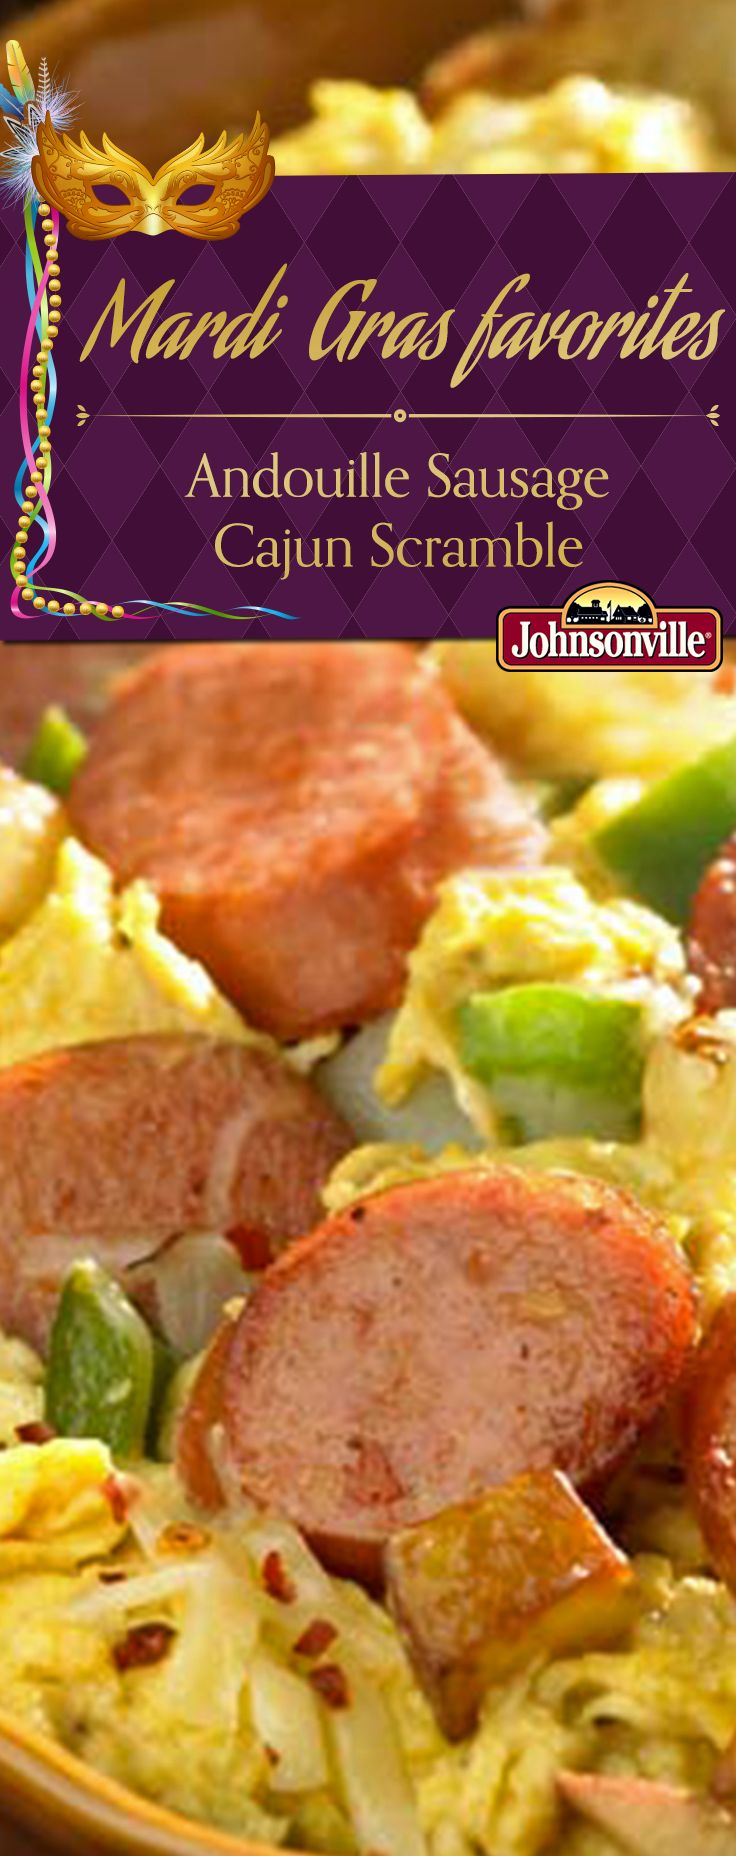 Andouille Sausage Cajun Scramble | Recipe | Chicken ...